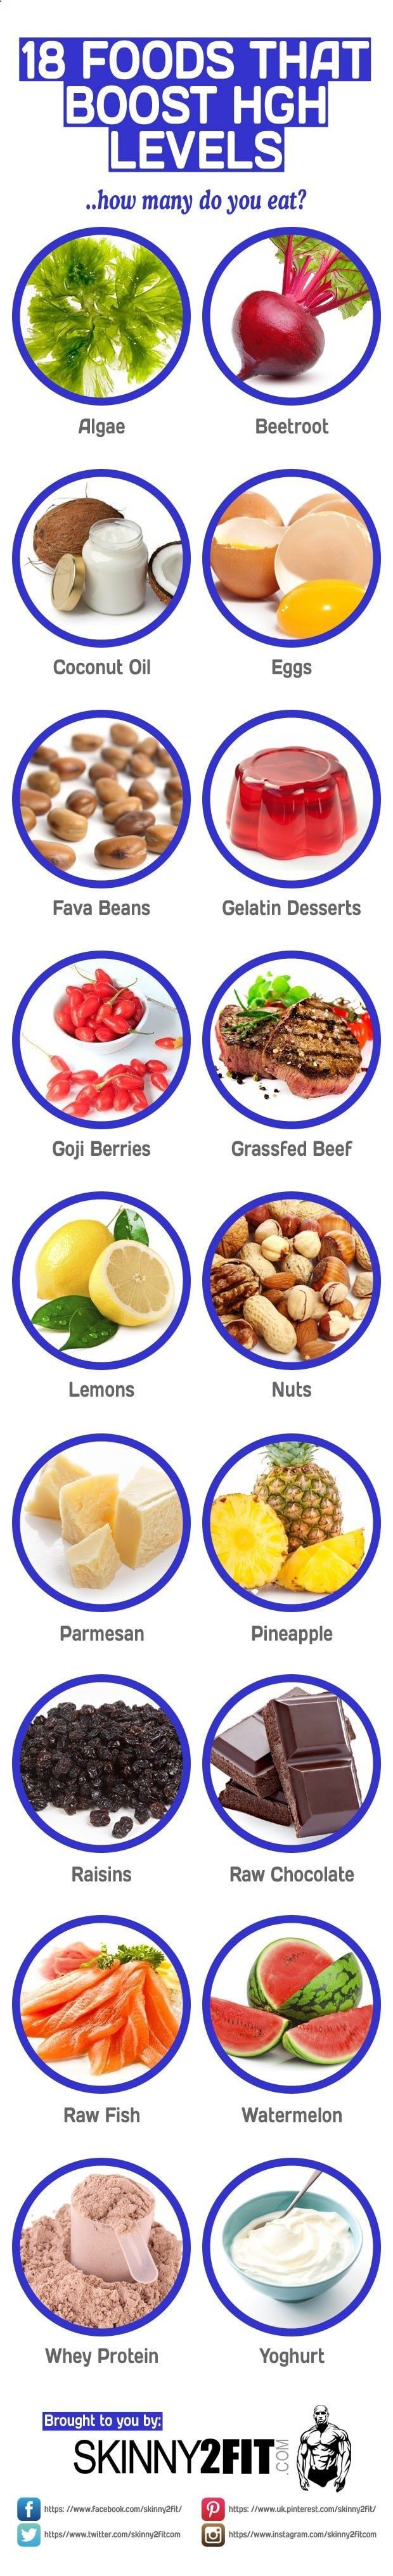 To increase strength and muscle mass you need to make sure your HGH levels and testosterone levels are high. These HGH boosting foods will help ensure a natural boost to your Human Growth Hormone levels.